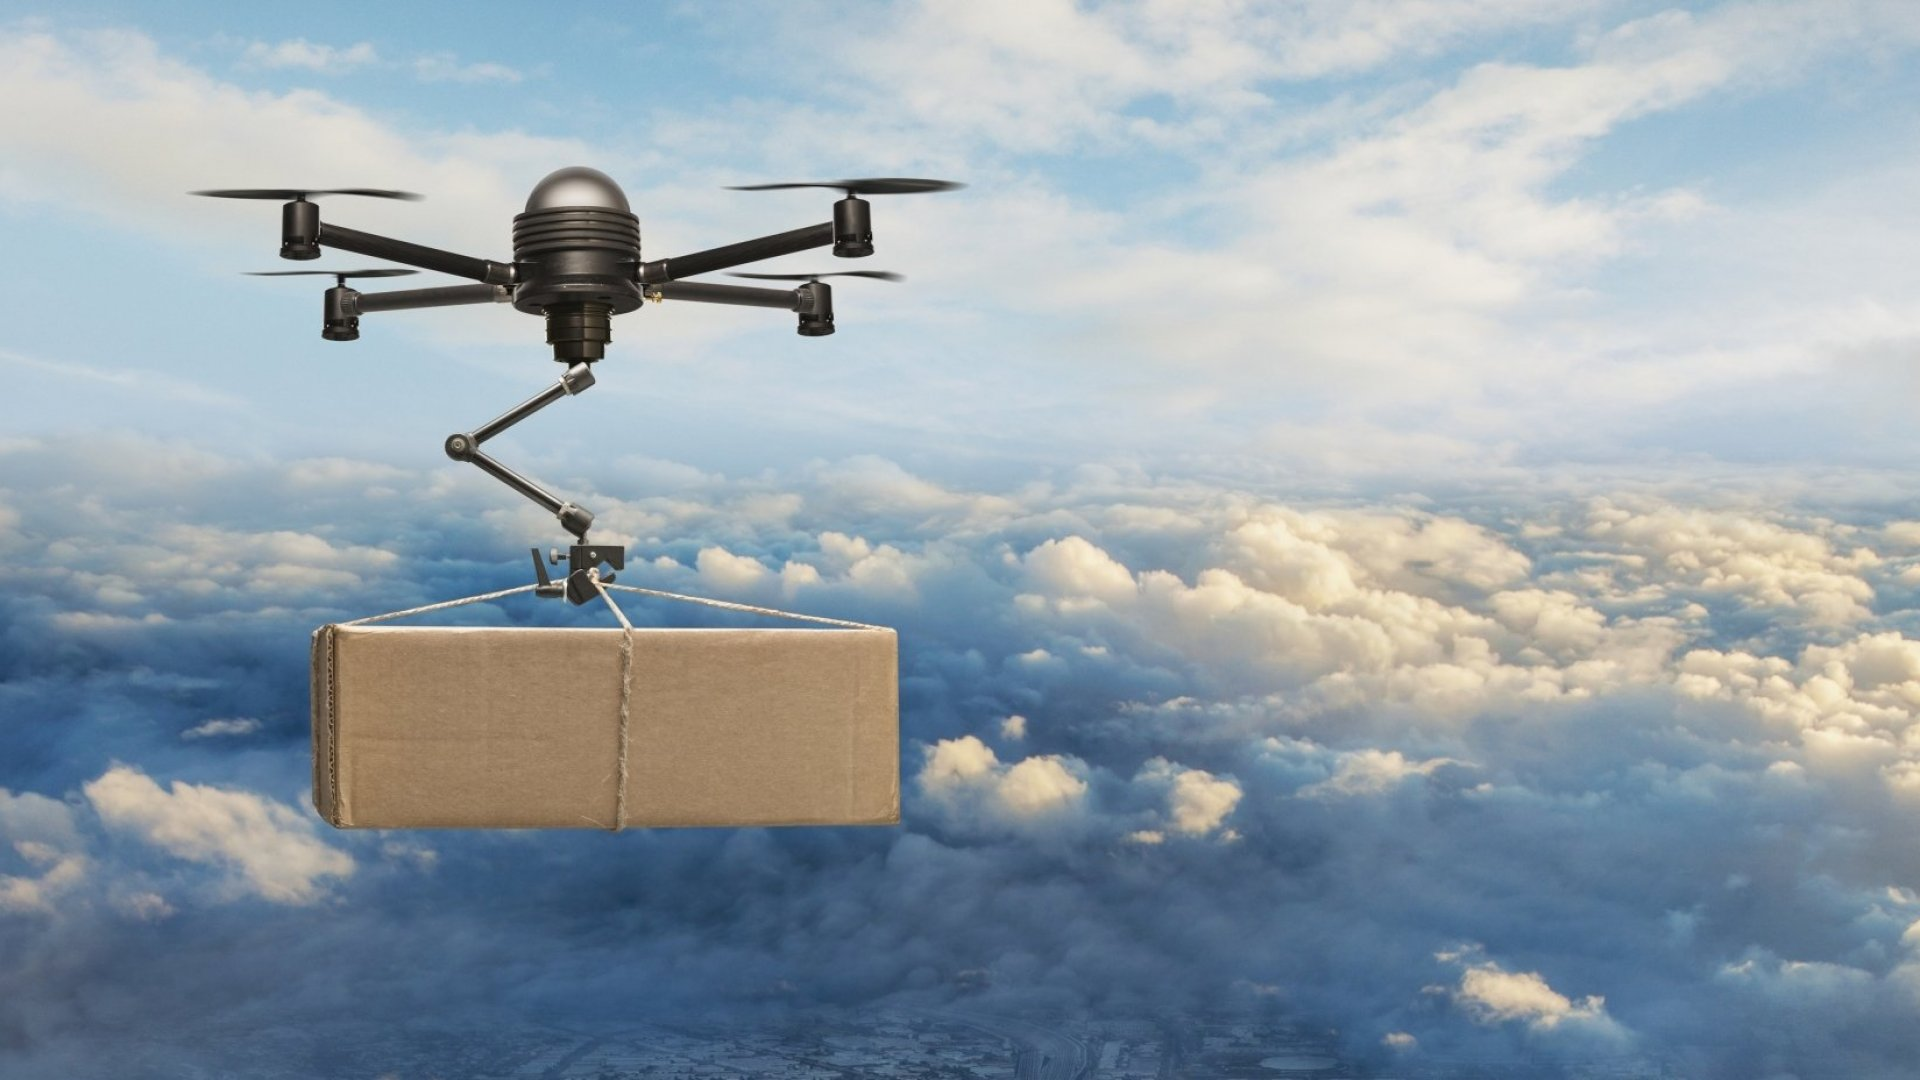 Are We Set to Get 600,000 Commercial Drones?